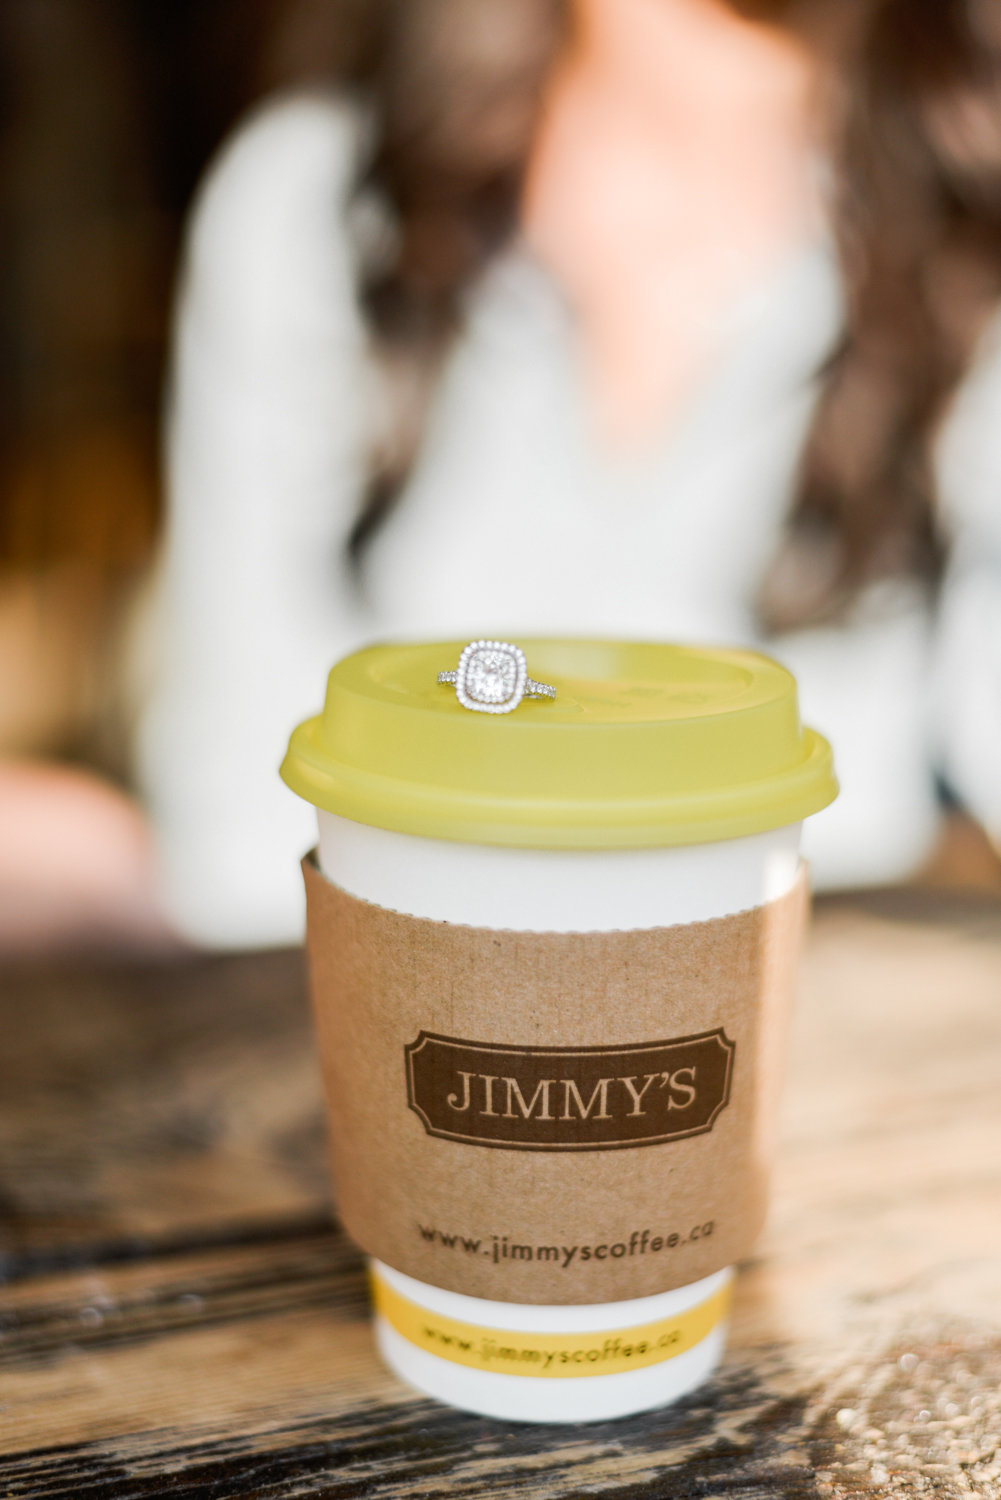 Jimmy's coffee engagement ring